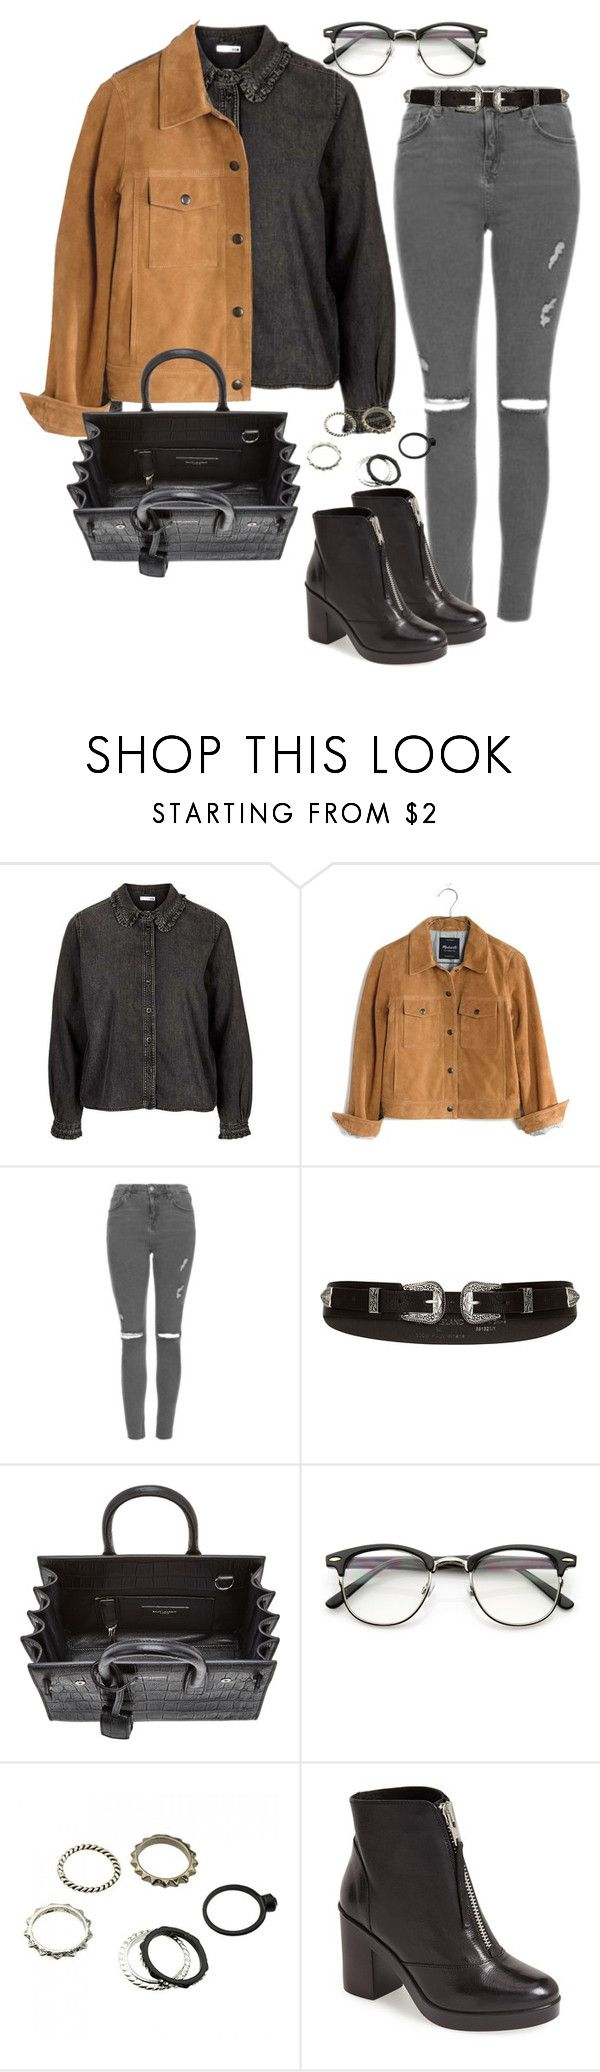 """Sin título #303"" by franciscagomezm on Polyvore featuring moda, Topshop, Madewell, River Island y Yves Saint Laurent"